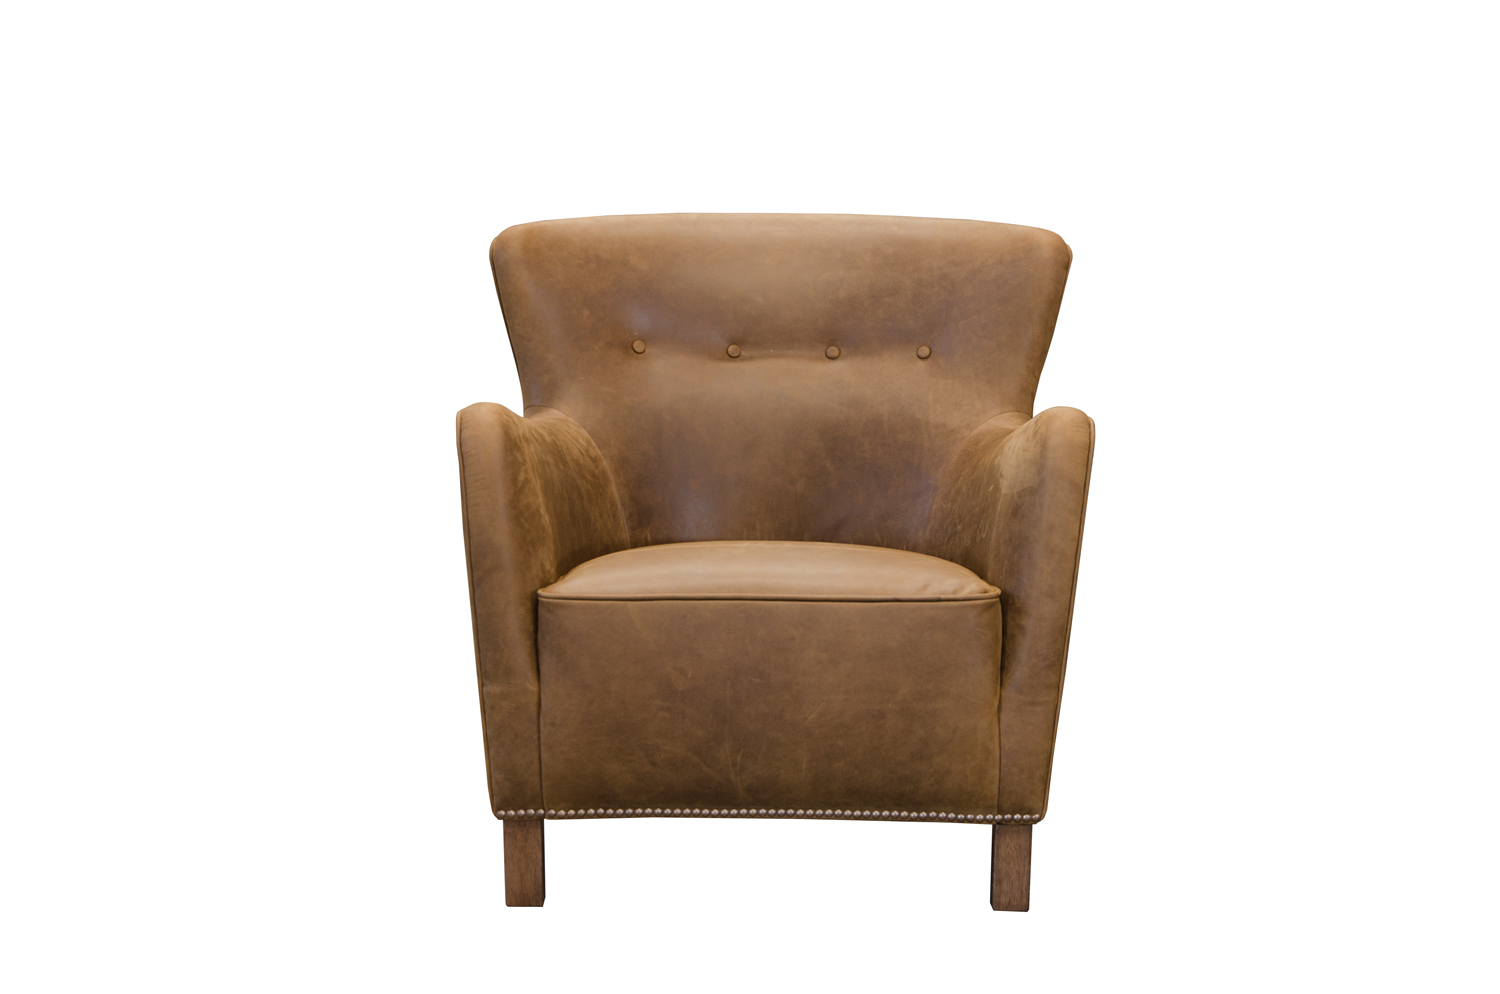 Stockholm Chair in Jin Brown